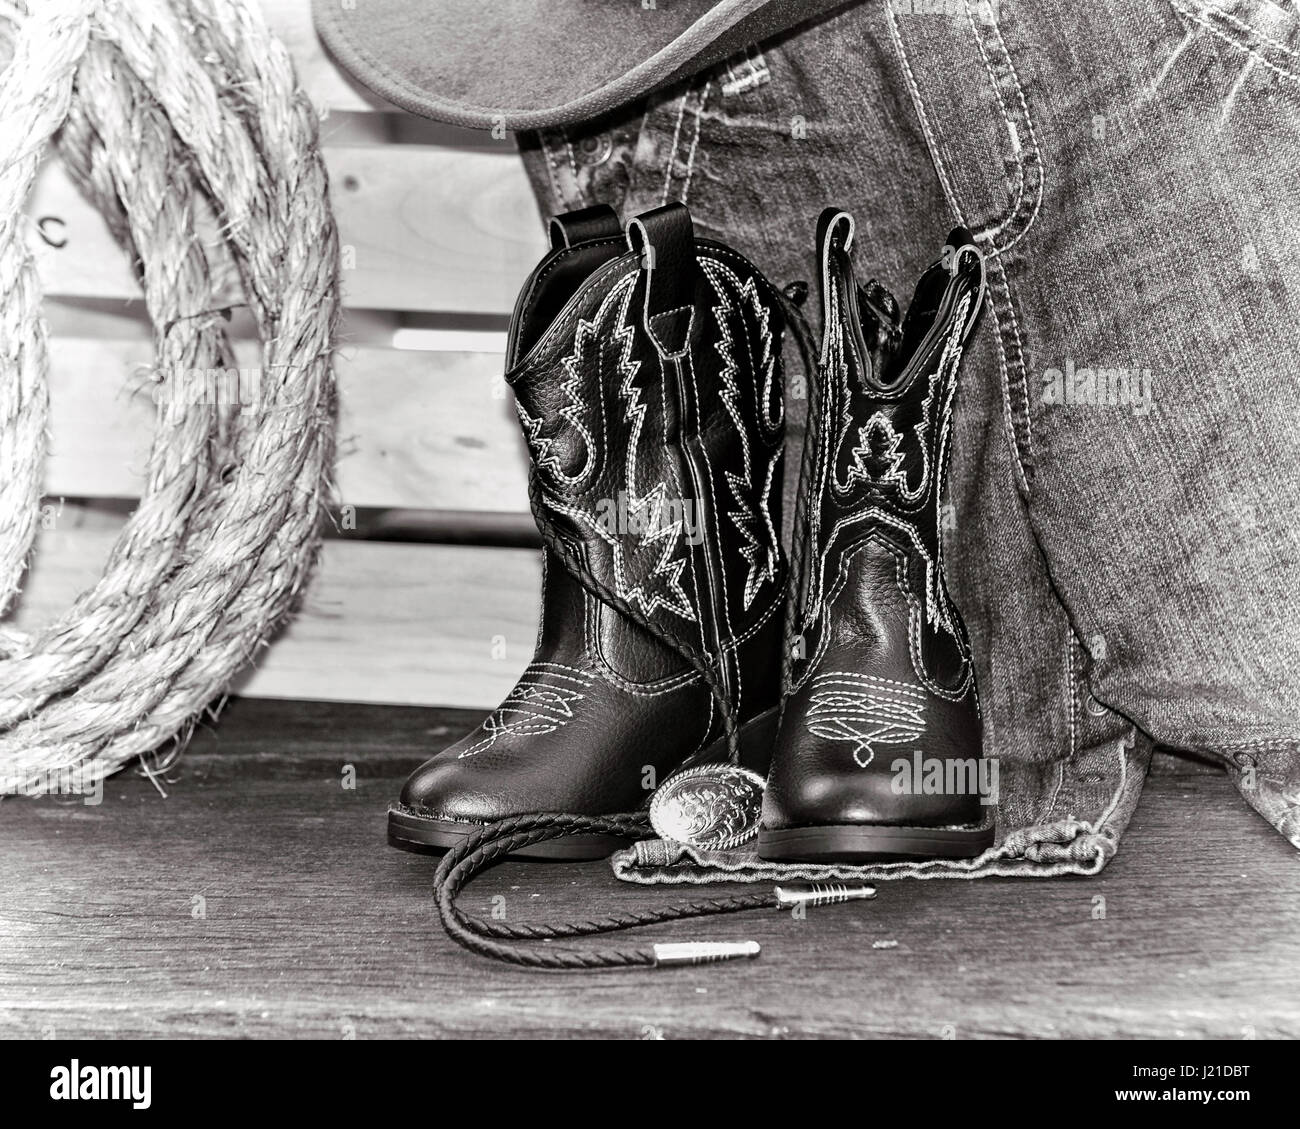 Cowboy boots with bolo tie sitting on blue jeans - Stock Image